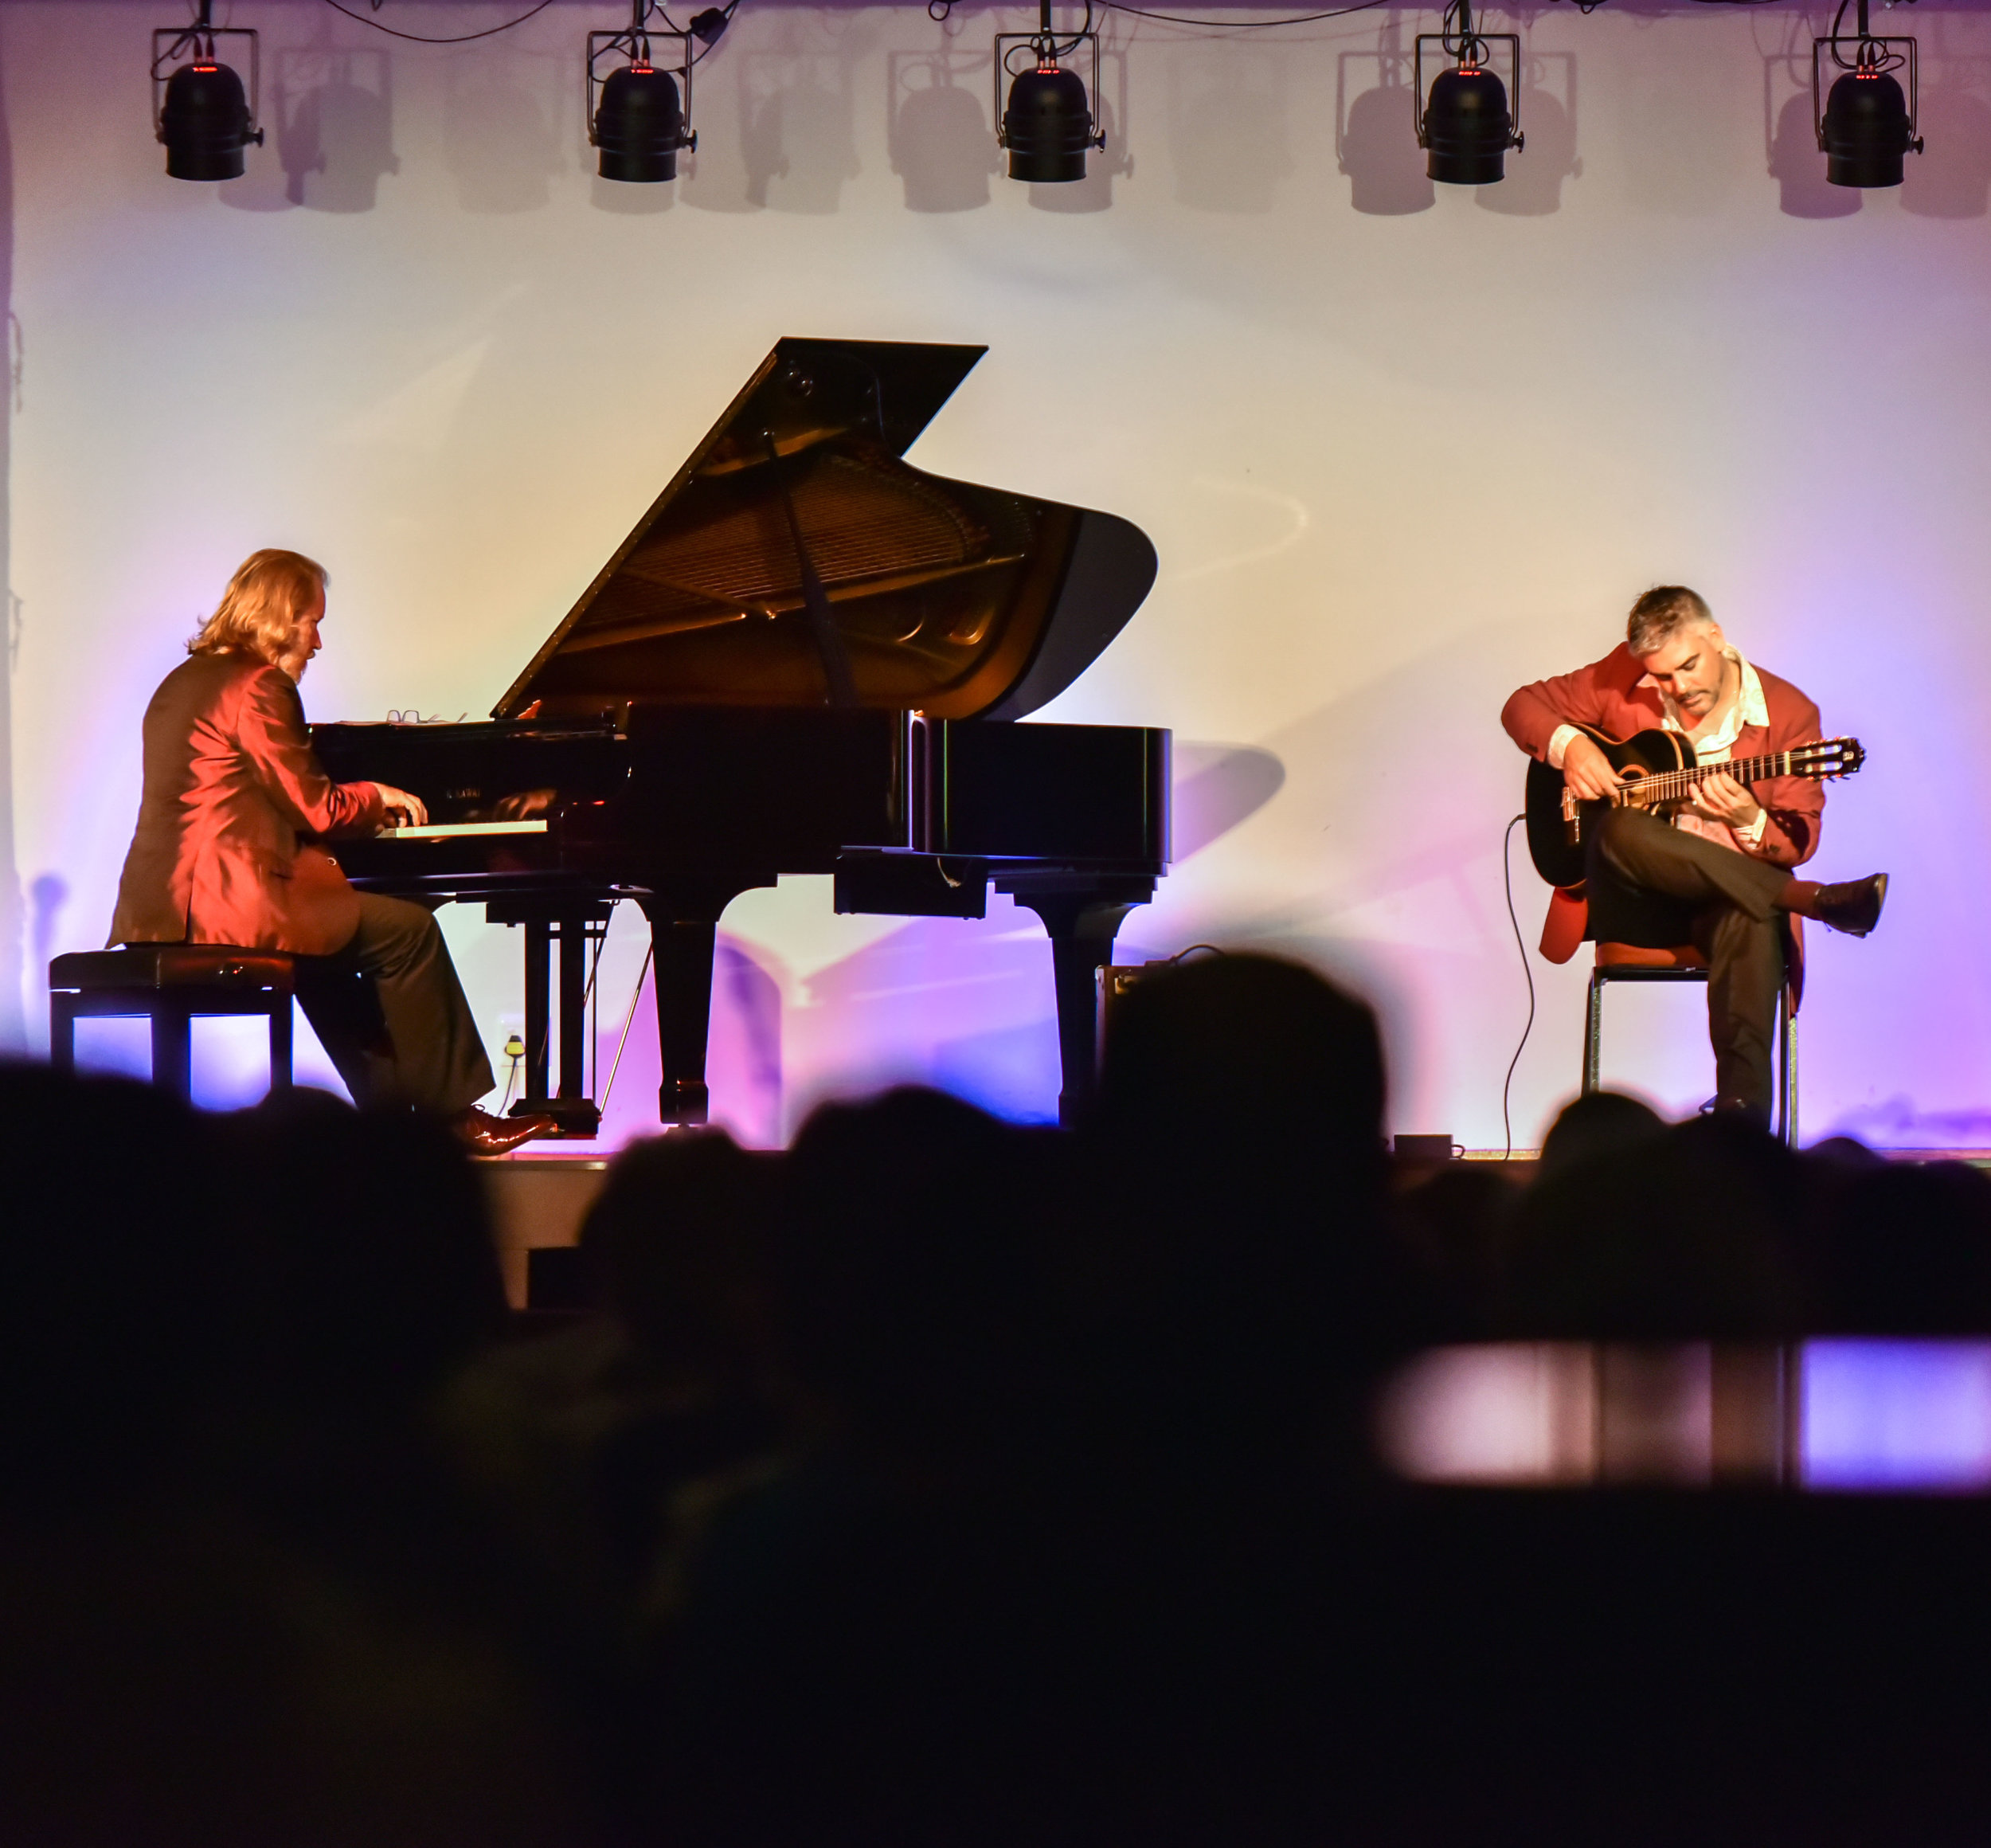 More images from this Concert on the  KZN Midlands  page  .